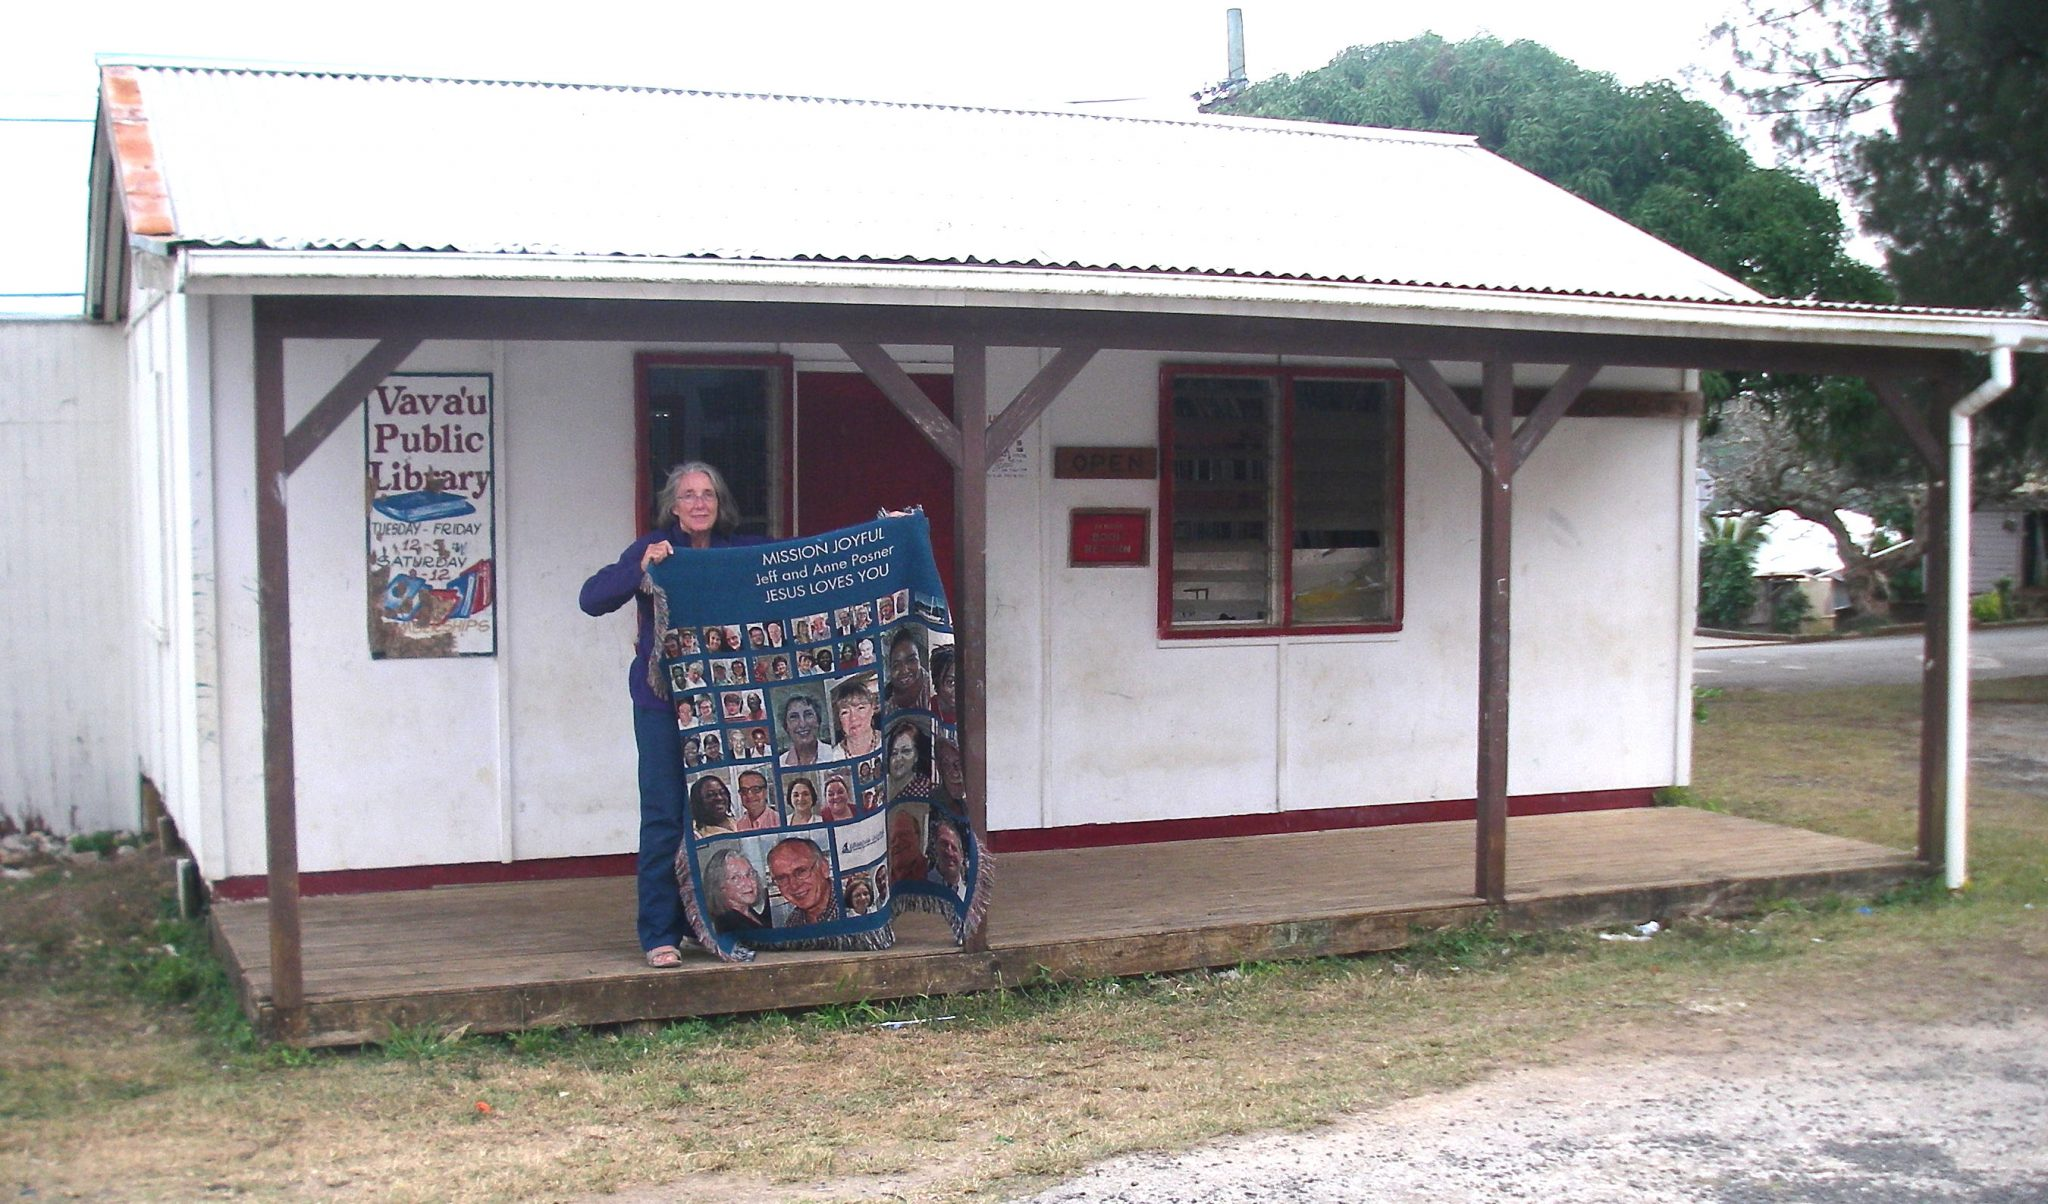 130. Anne in front of the Vava'u Public Library holding the Mission Joyful blanket given to Jeff and Anne from the Methodist Church chaple service in Huntsville, Alabama